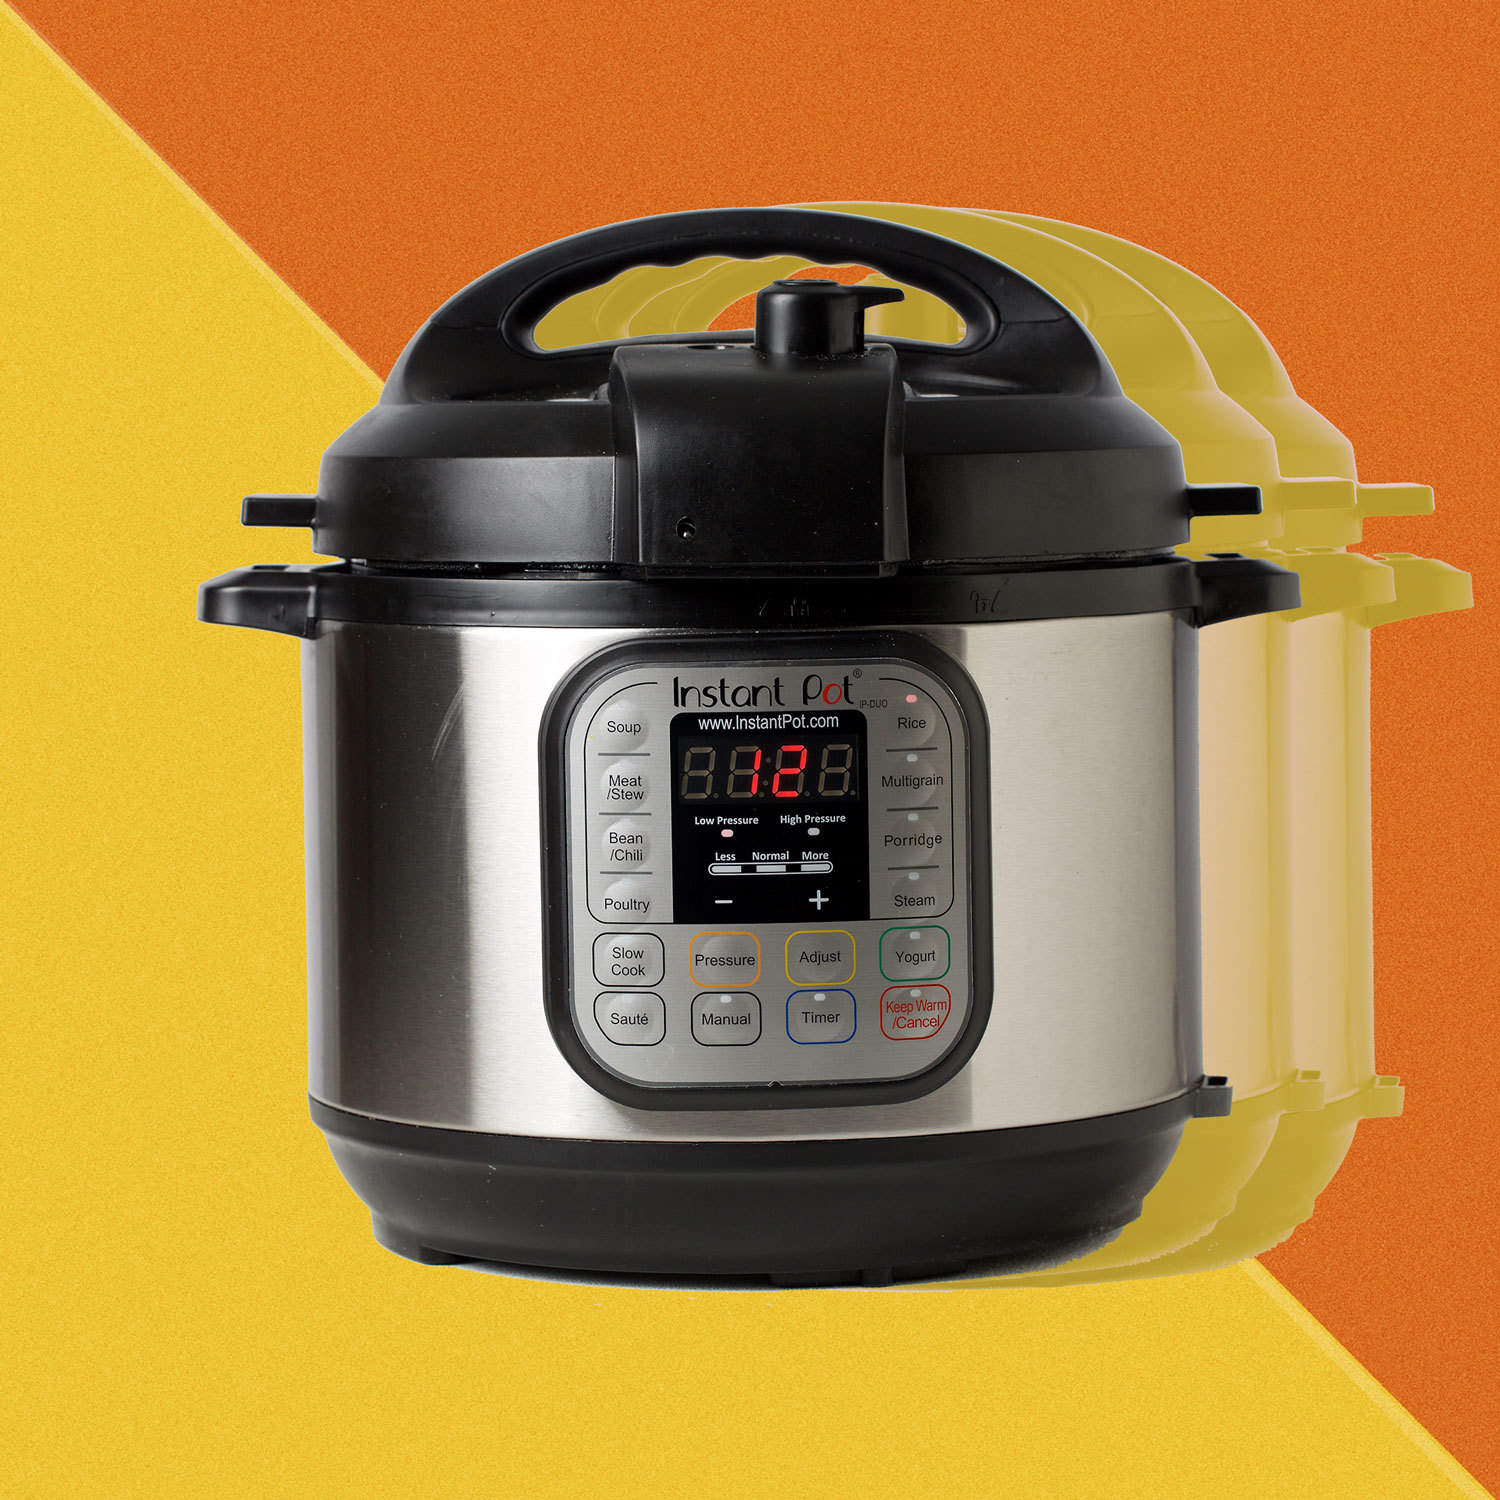 Instant Pot against an orange geometric background